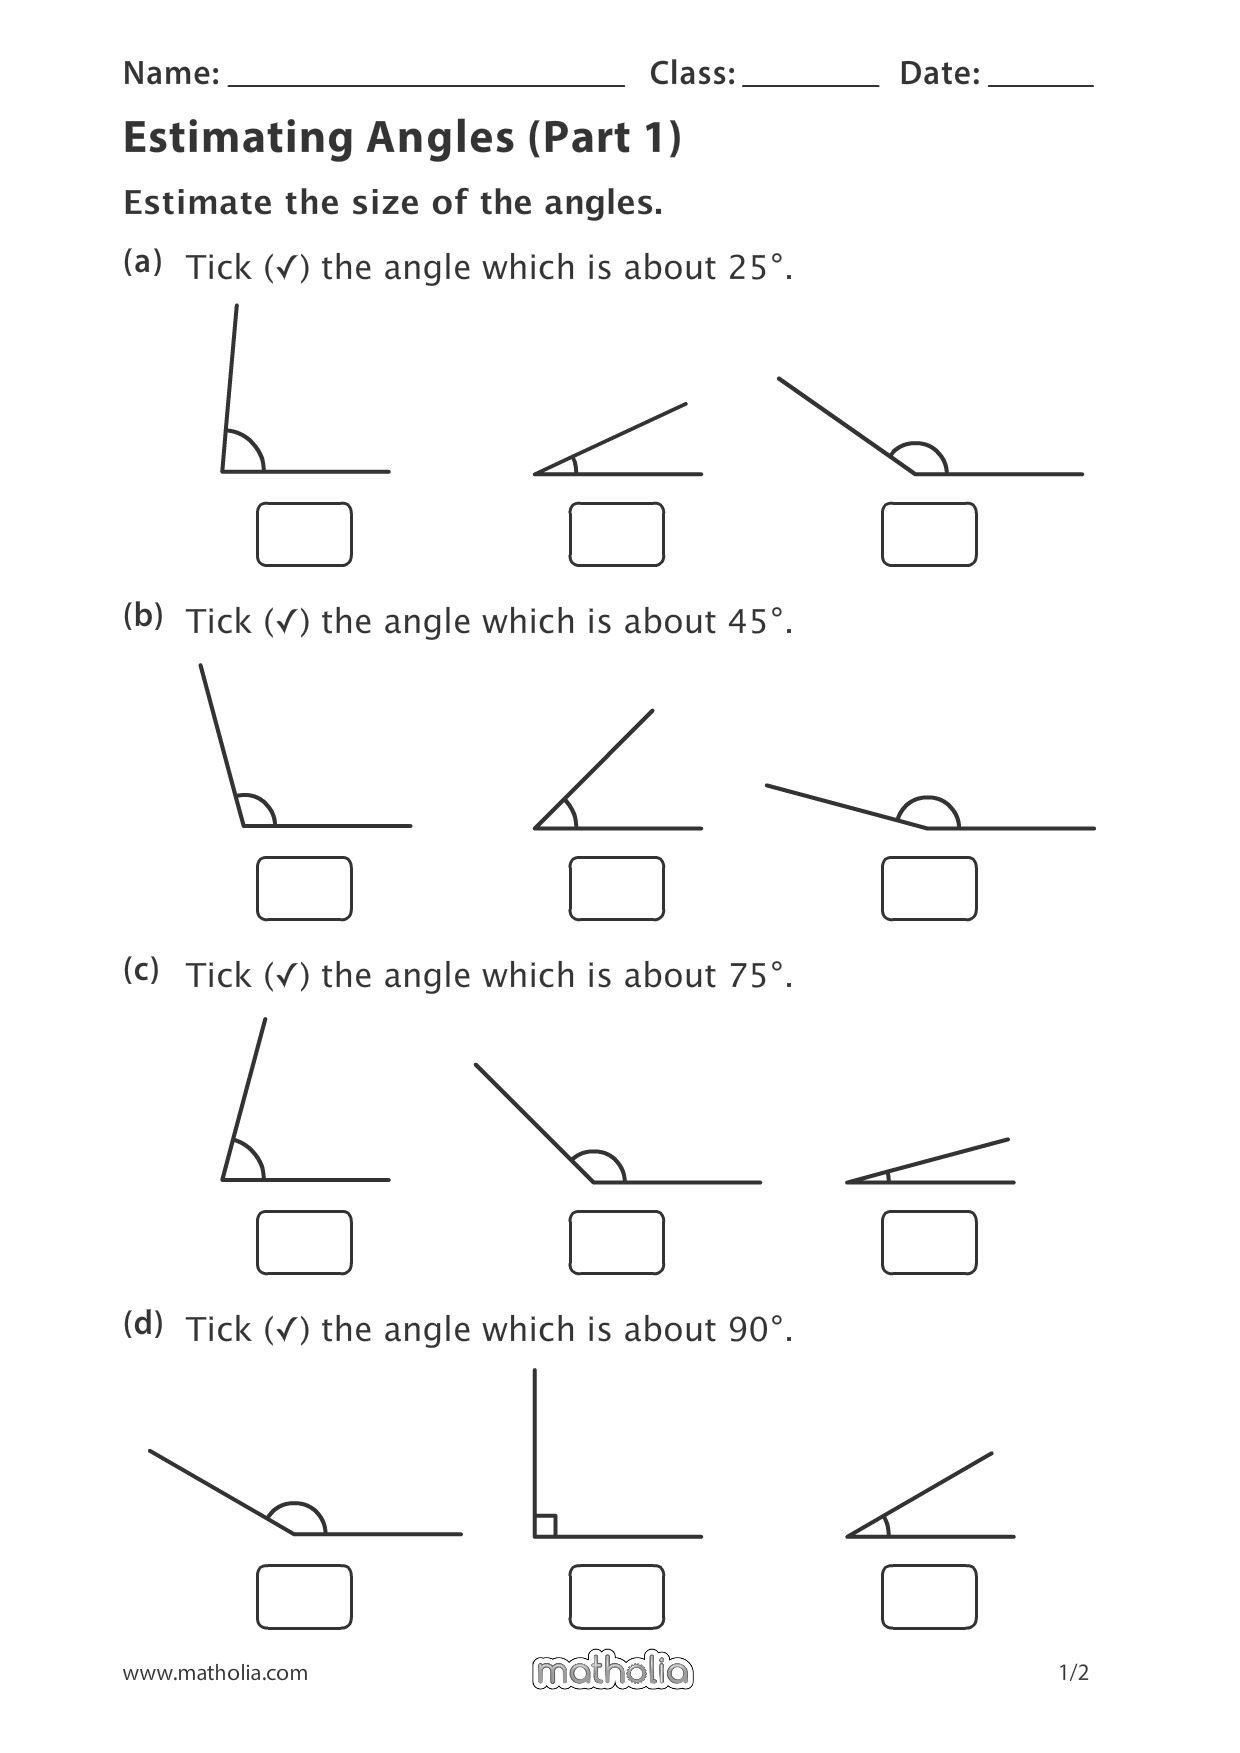 Estimating Angles Part 1 In